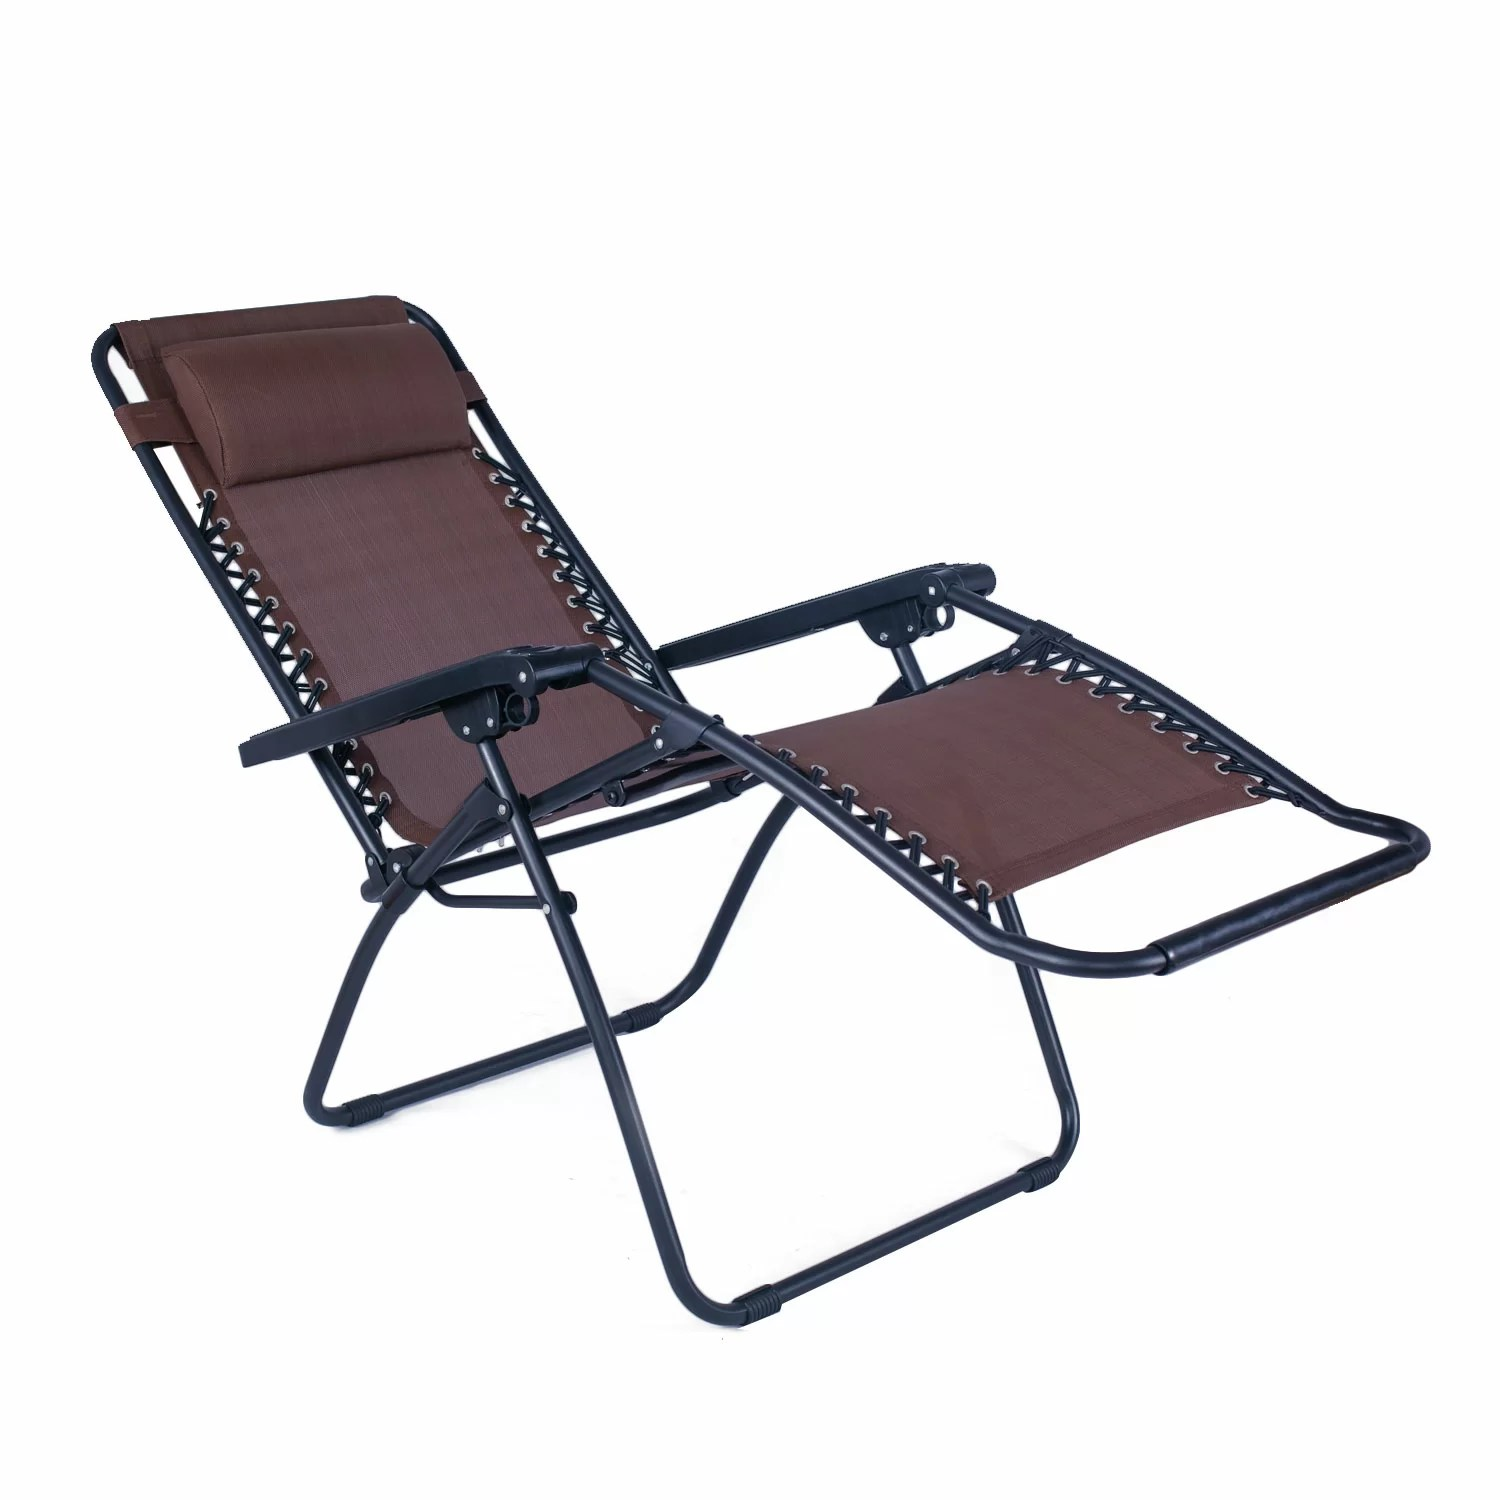 recliner lawn chairs folding kitchen chair seat cushions adecotrading outdoor and reclining zero gravity